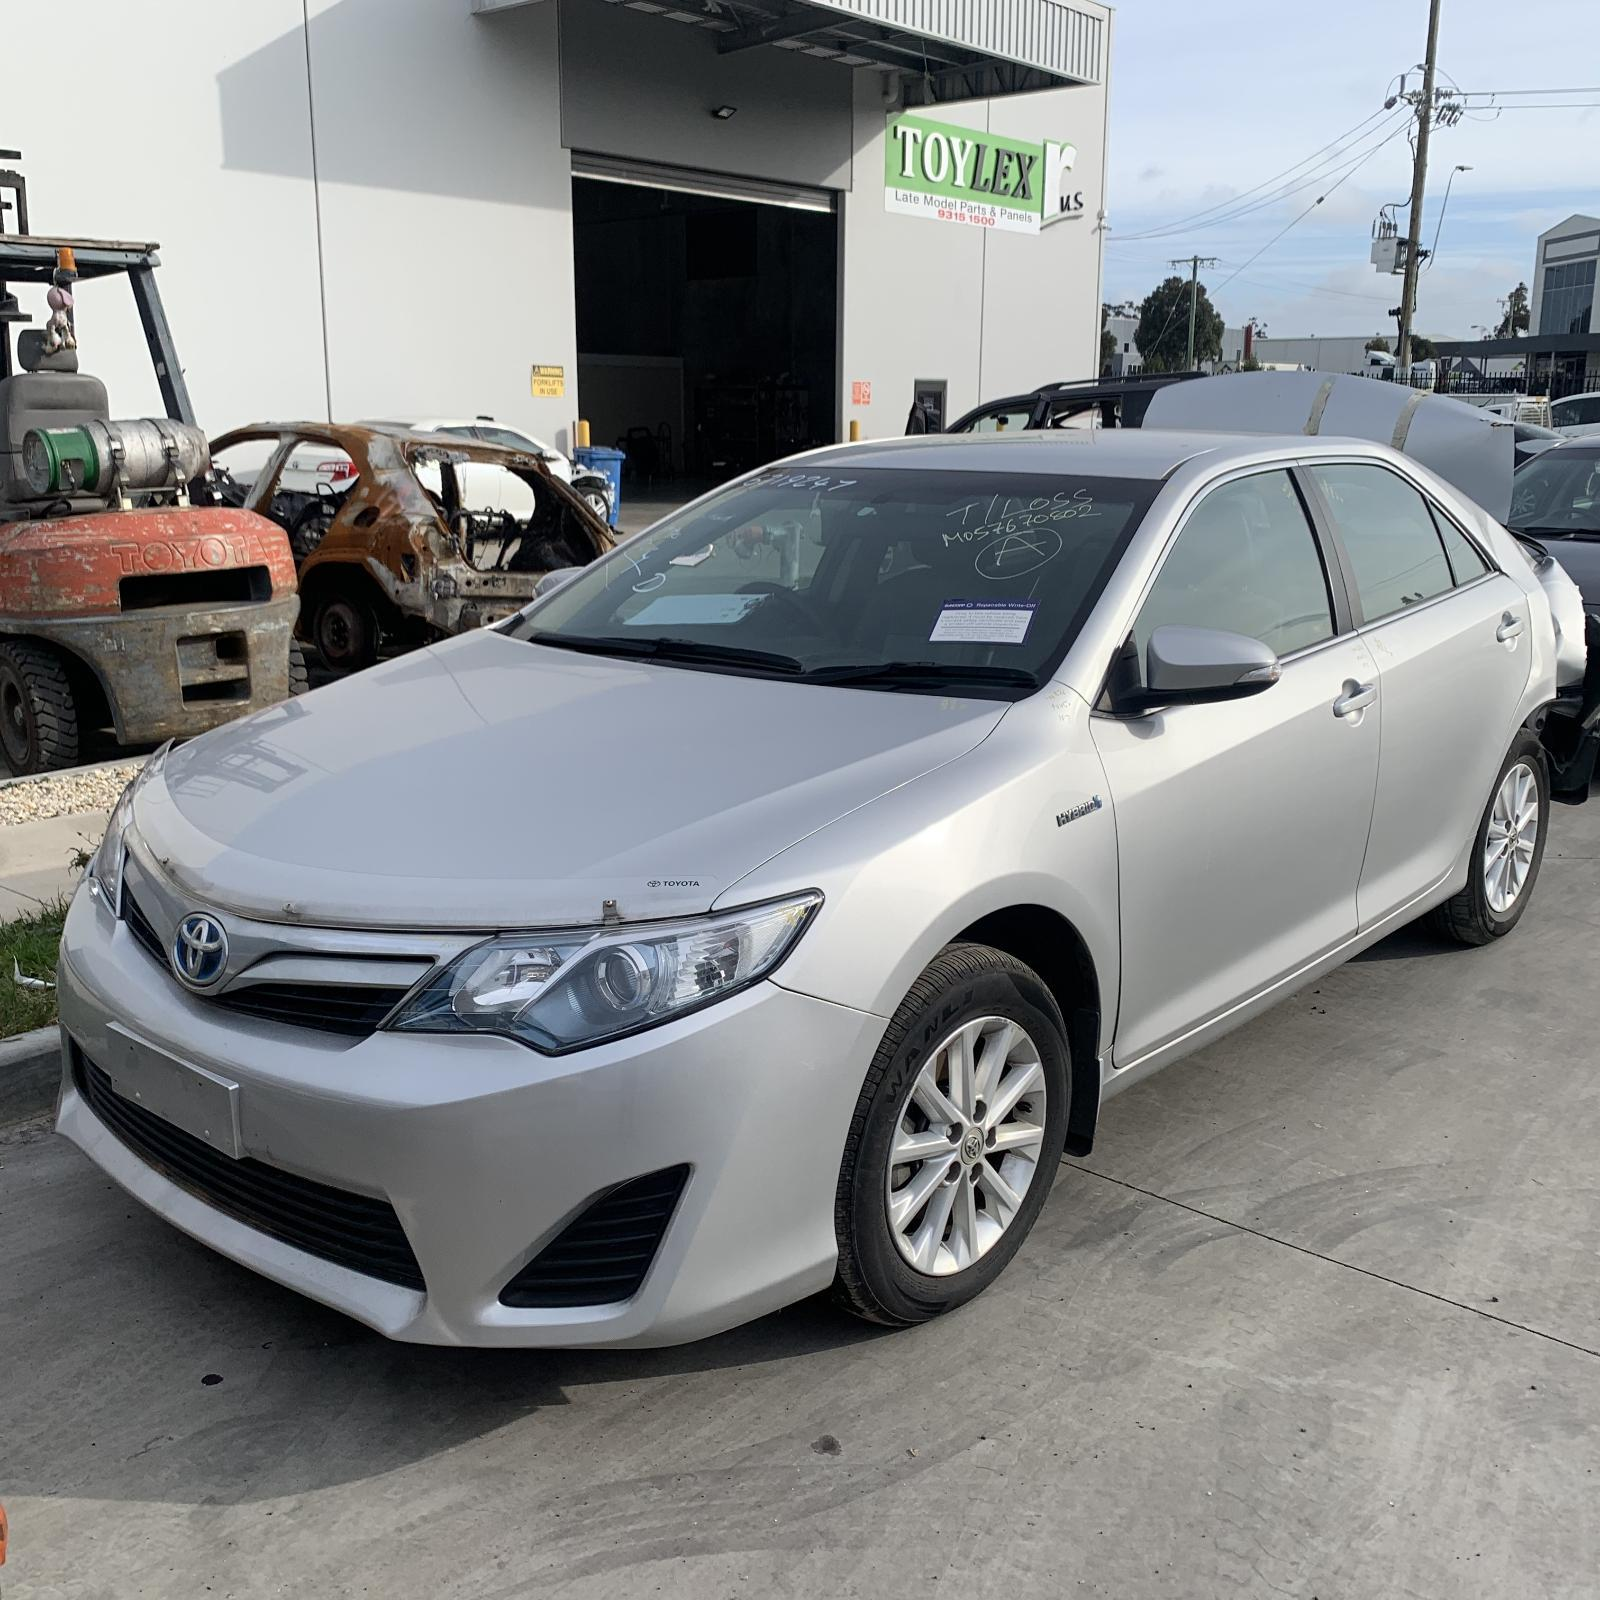 Toyota CAMRY AVV50R HYBRID 2AR-FXE 2.5L Engine Automatic FWD Transmission 12/11  - 05/15